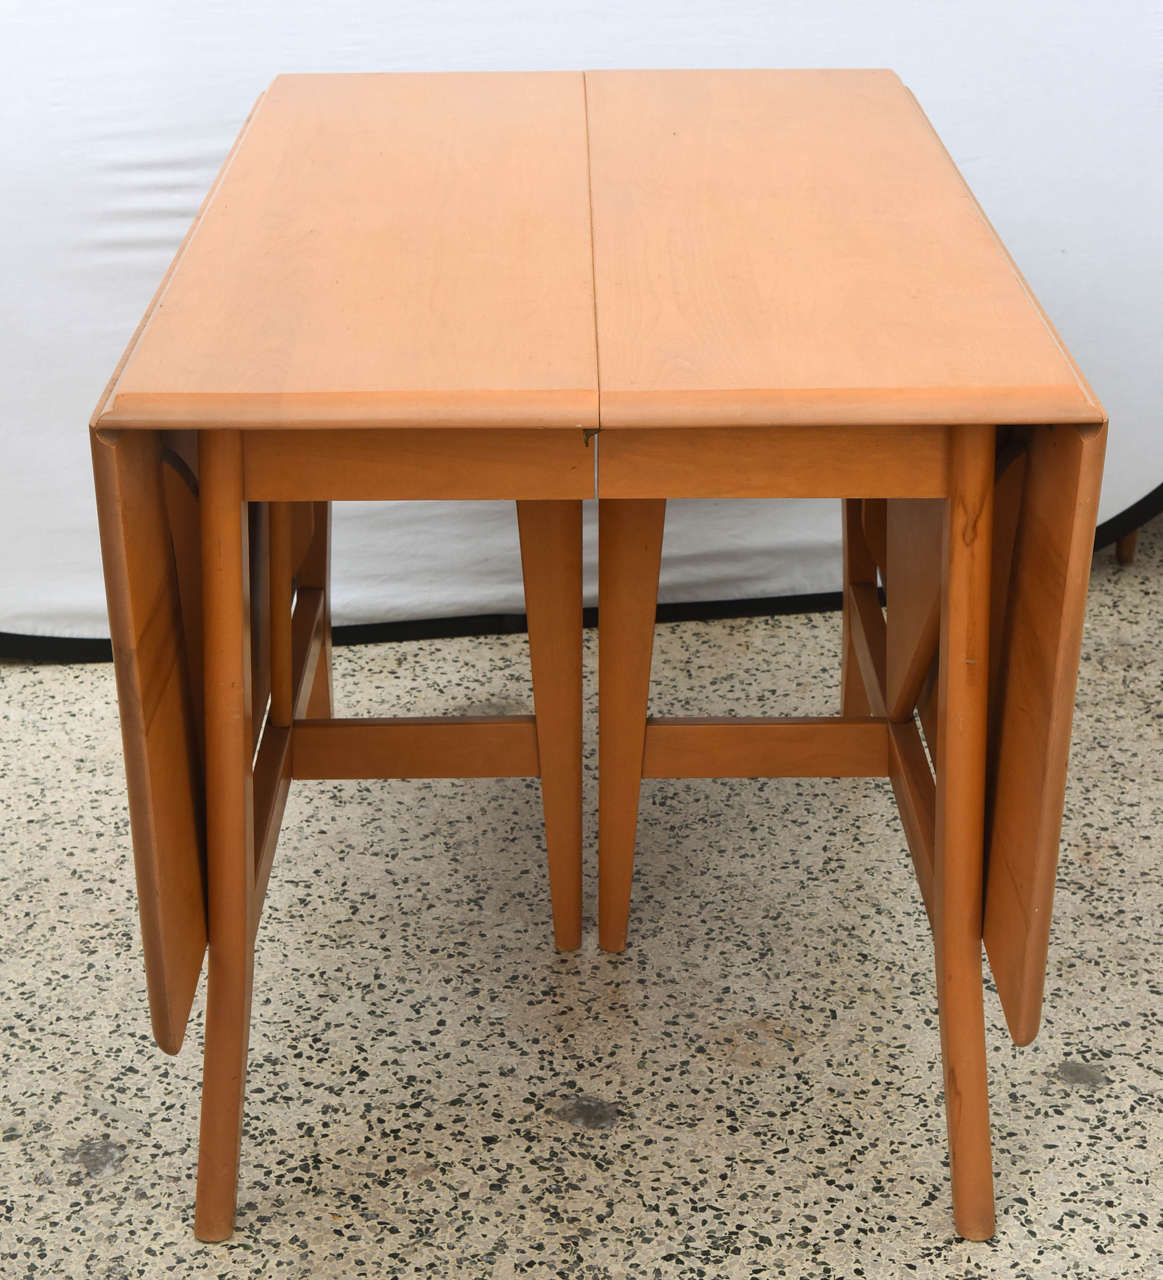 maple heywood wakefield drop-leaf dining table, 1950s saturday